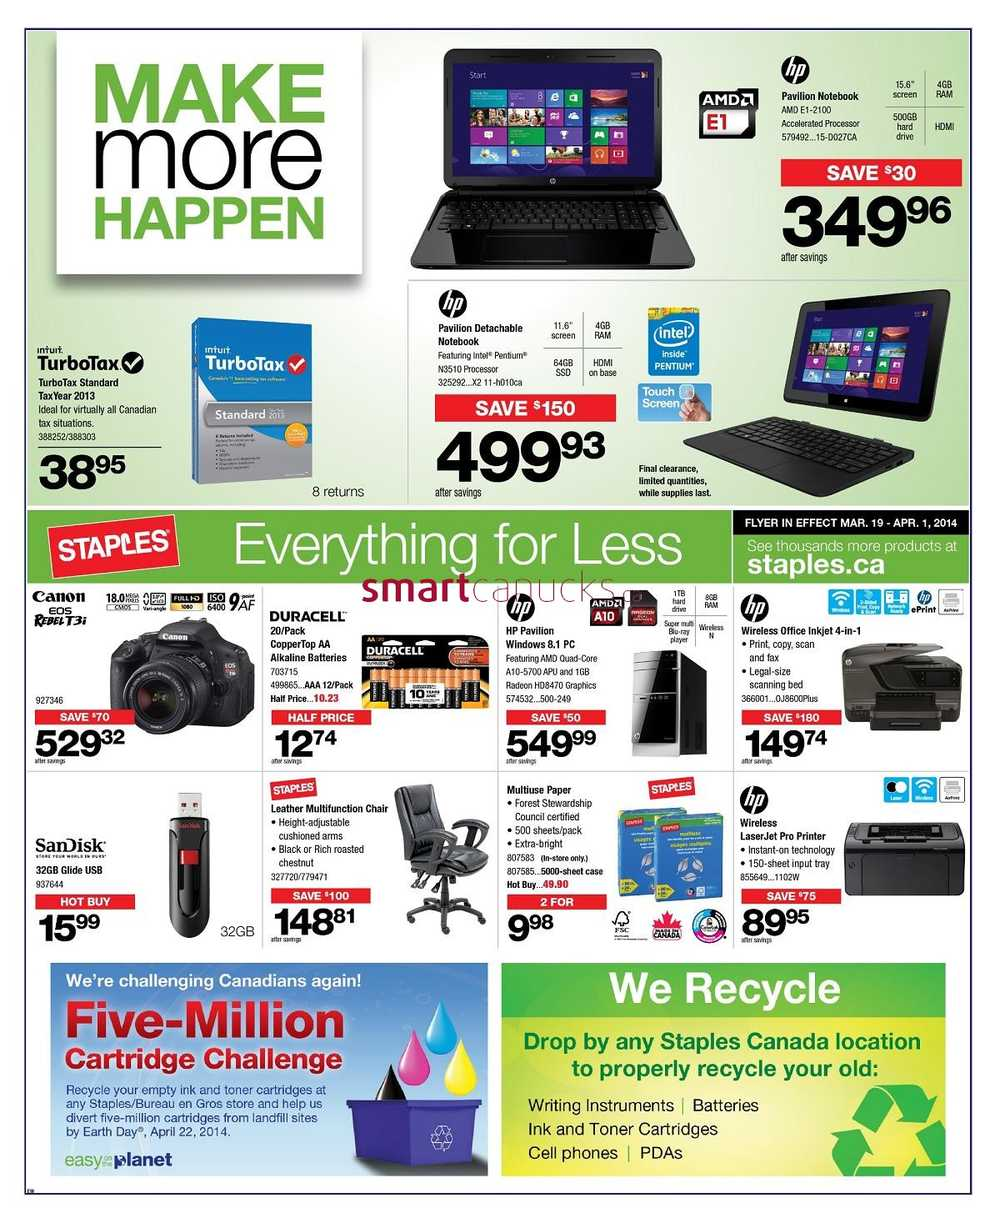 This Staples Circular Ad was published on Dec. 2, This Circular Ad is valid Dec. 2, through Dec. 8, This Ad may contain time-sensitive information and offers. Please check with Staples to confirm availability.